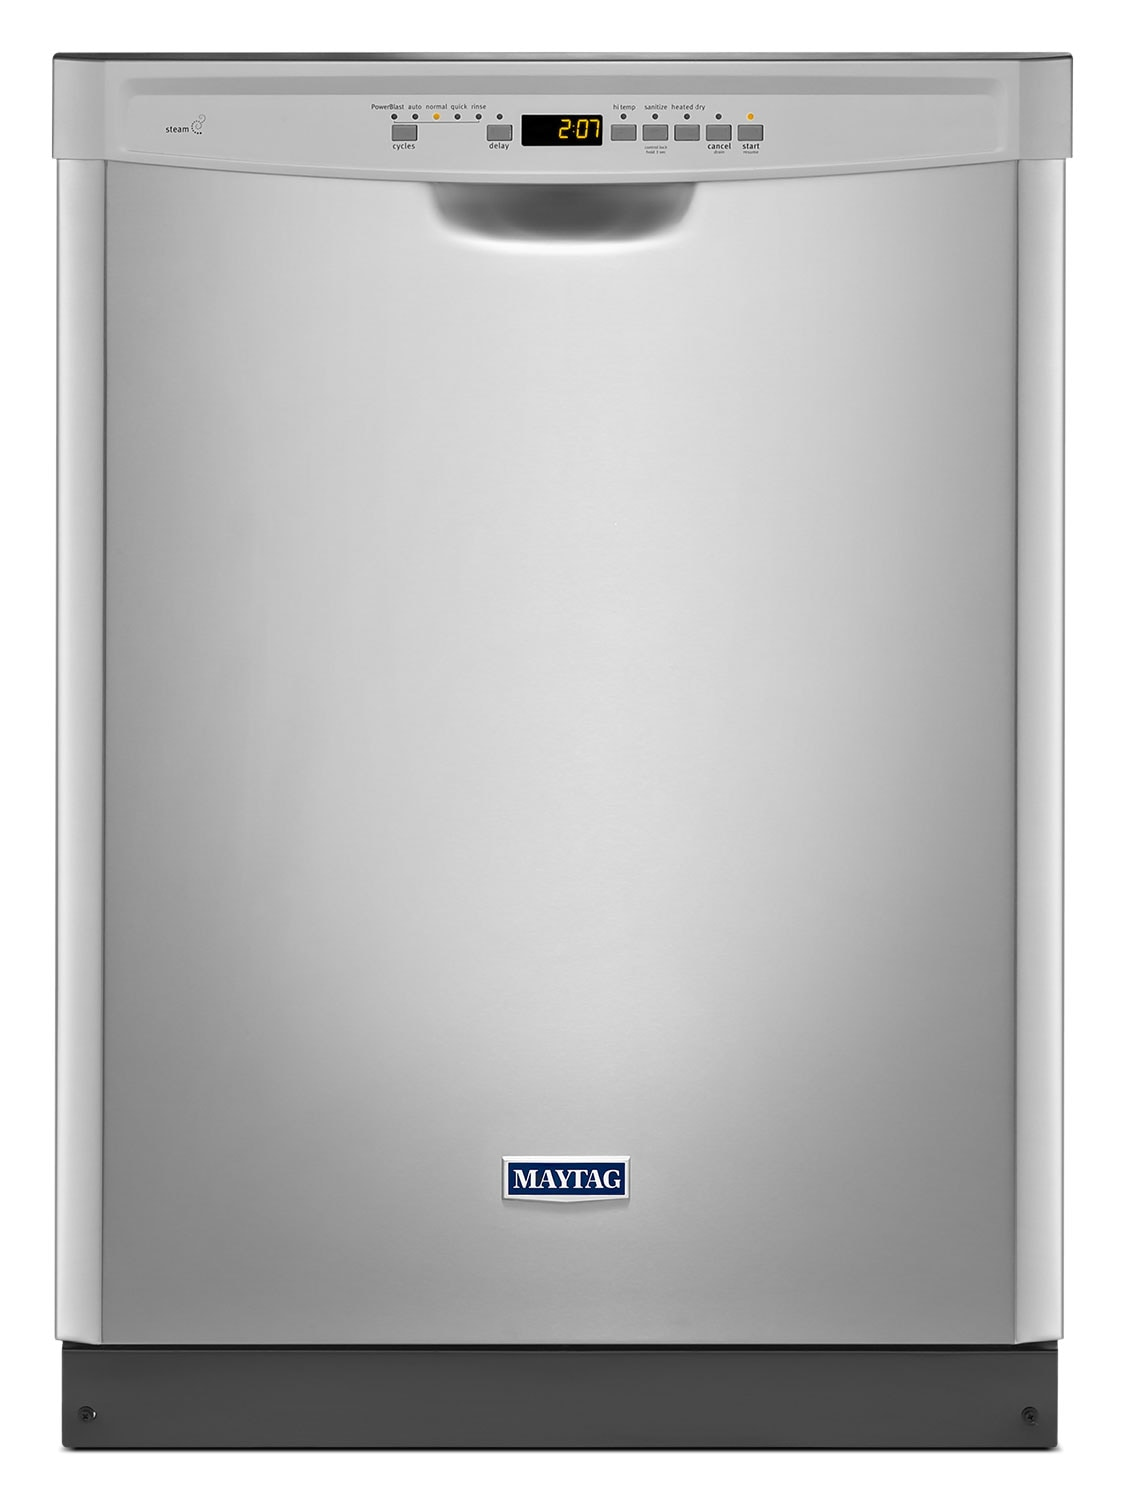 Maytag Built-In Dishwasher – MDB4949SDZ